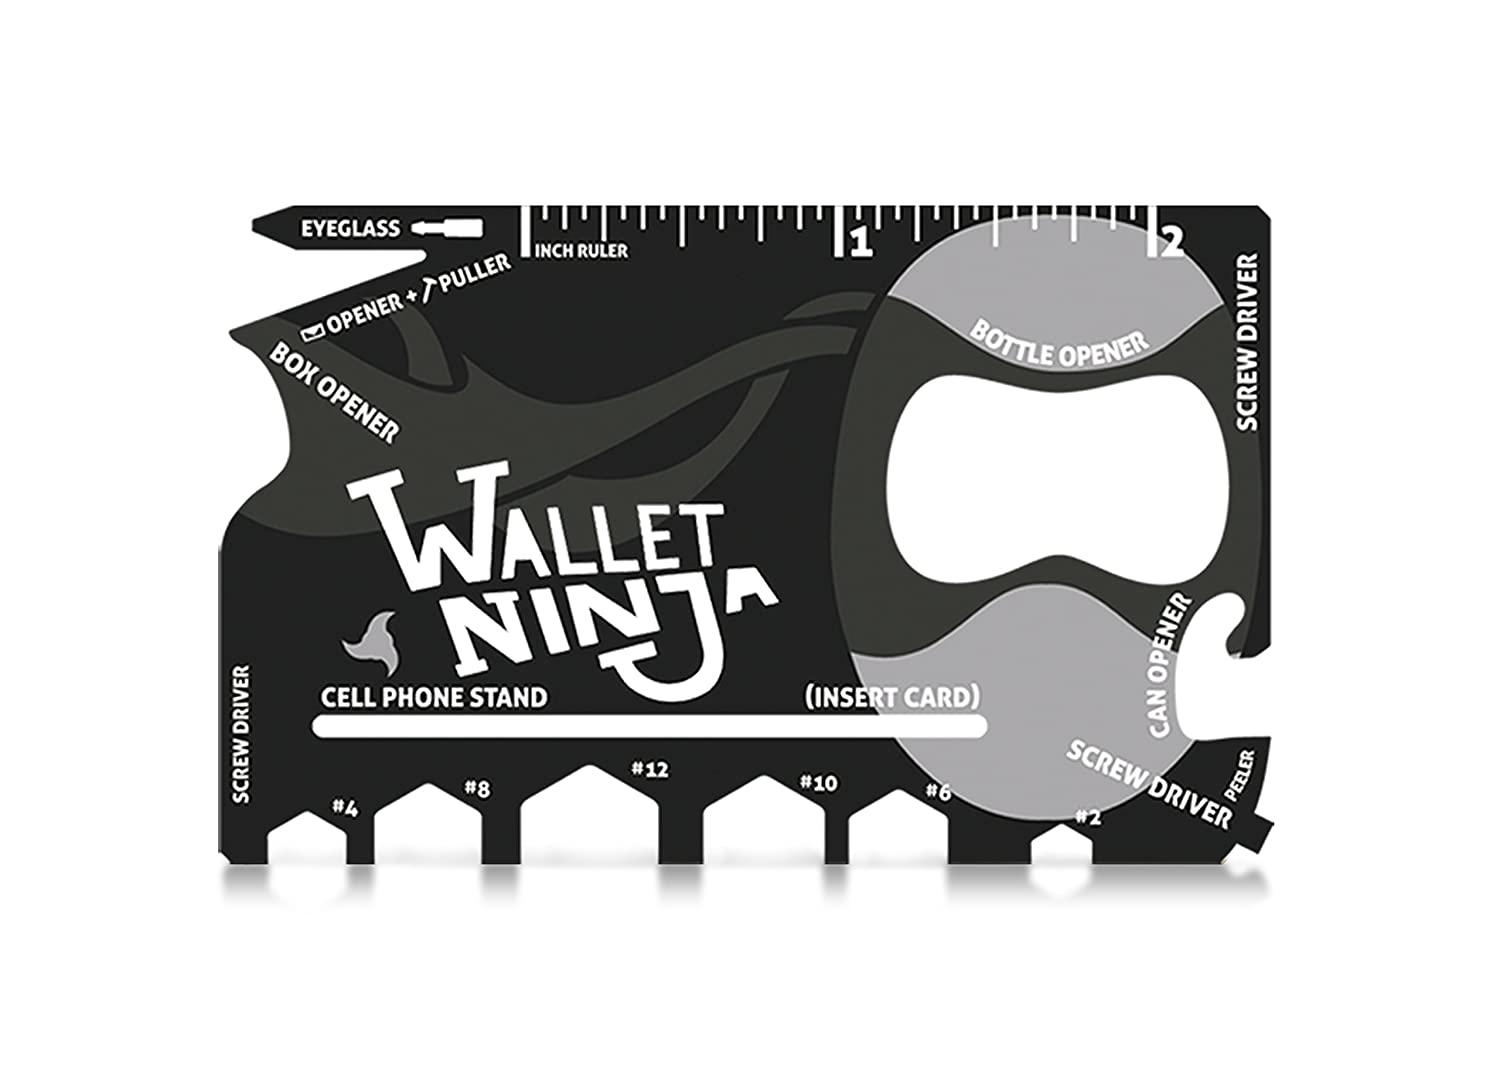 Wallet Ninja 18 in 1 Multi-purpose Credit Card Size Pocket Tool (Eyeglass Screwdriver, Hex Wrenches, Bottle Opener, Phone Stand, Can Opener, Ruler)